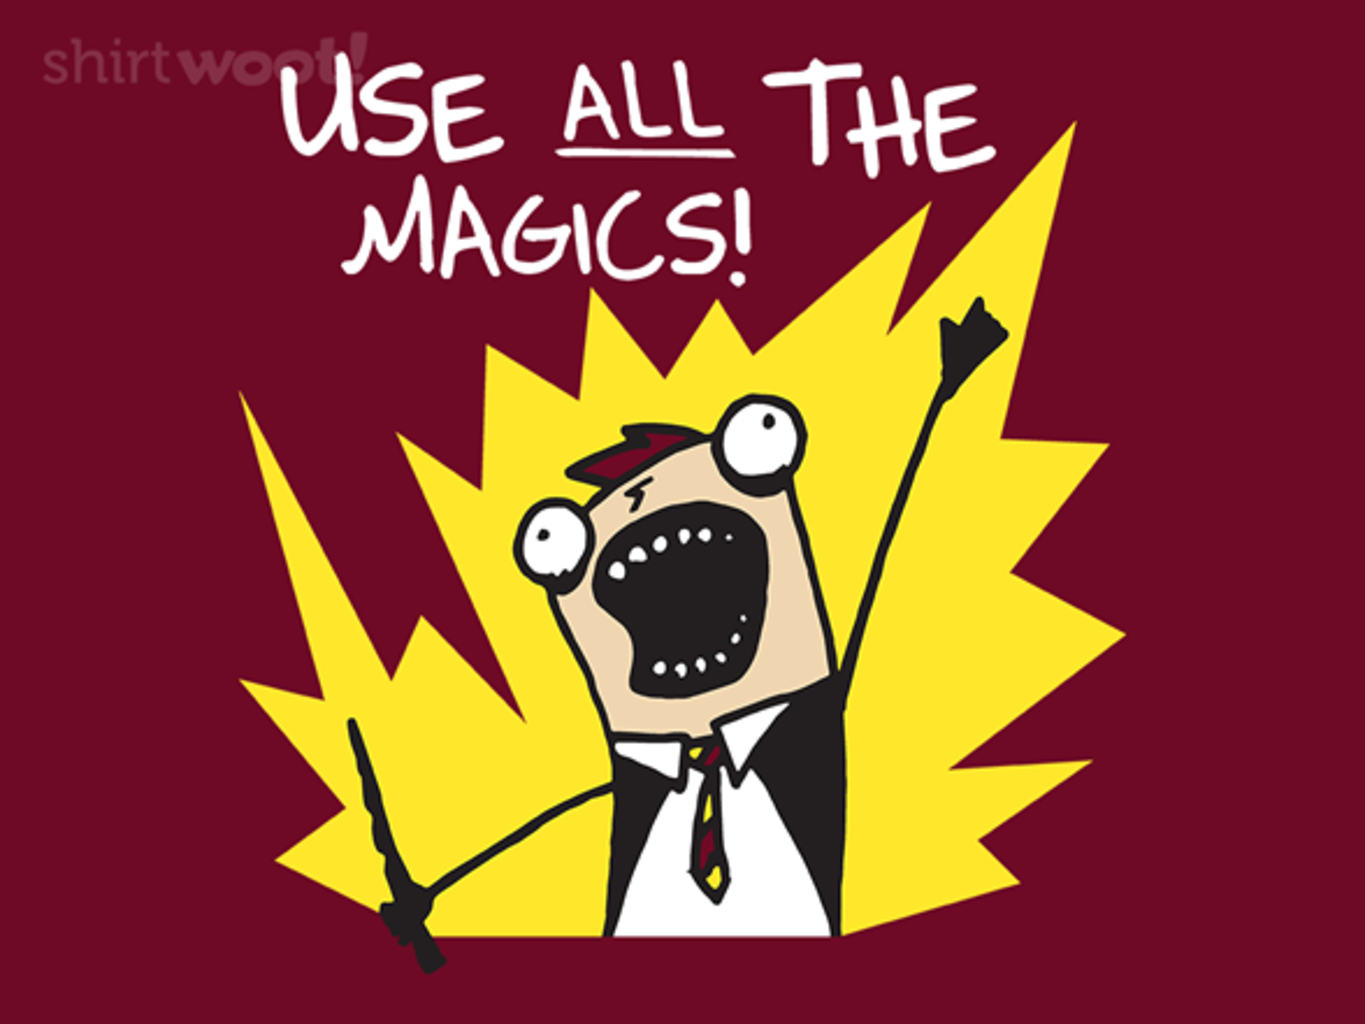 Woot!: All the Magics